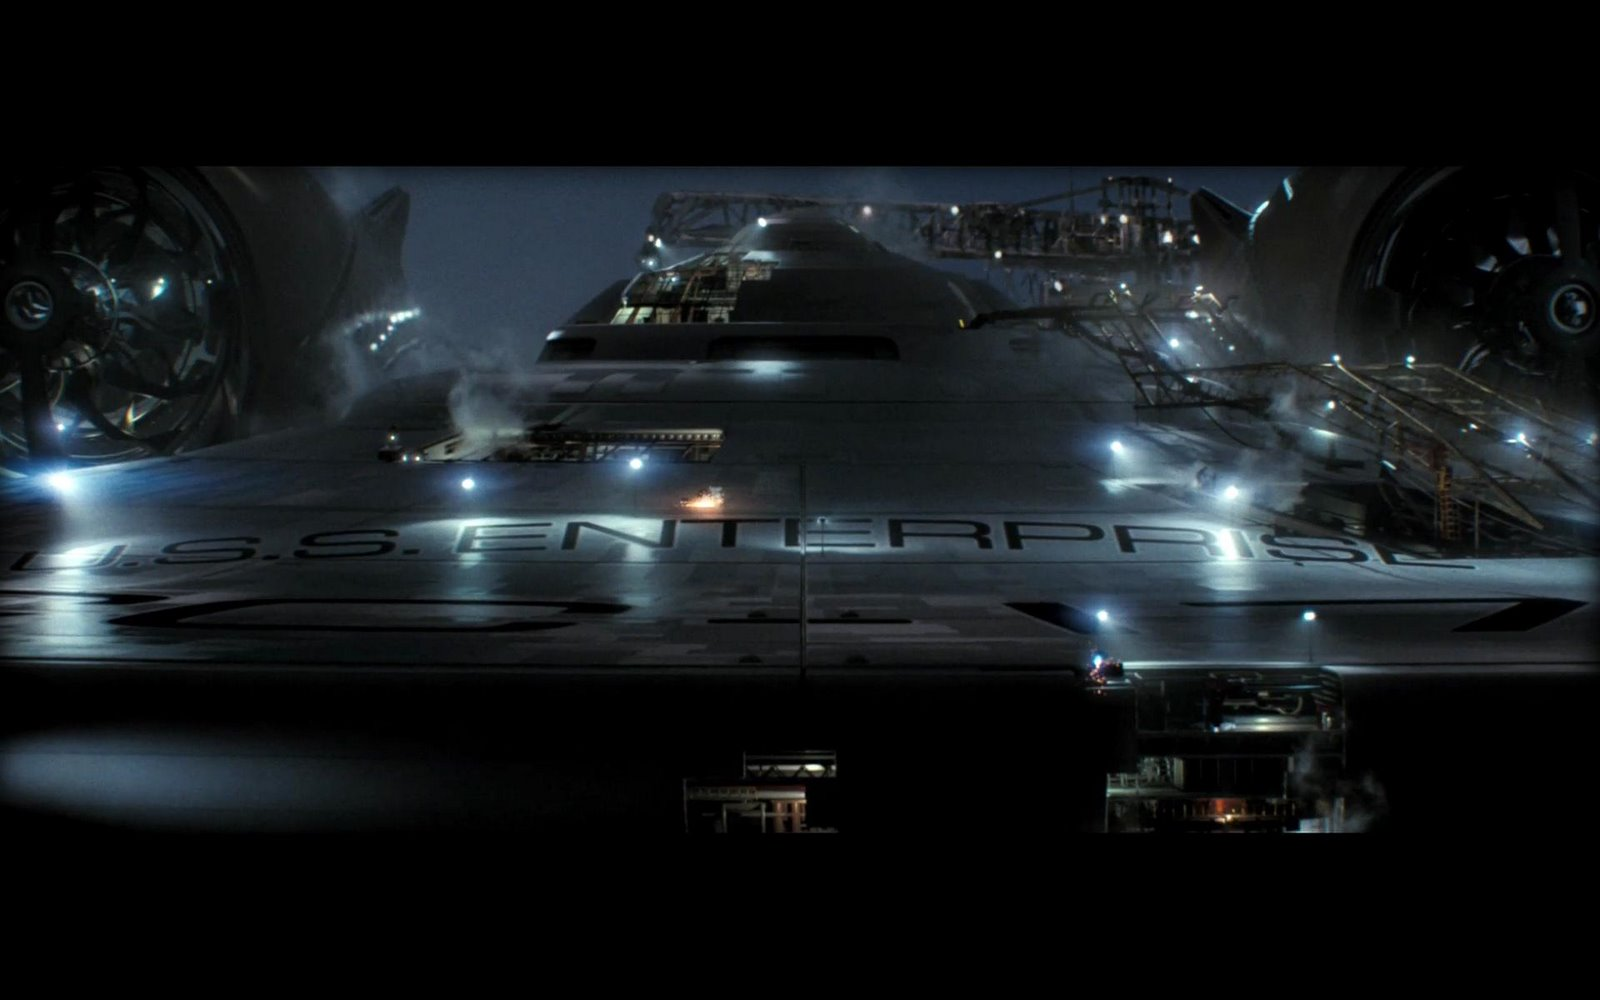 Wallpaper wallpaper Star Trek Widescreen Wallpaper hd wallpaper 1600x1000